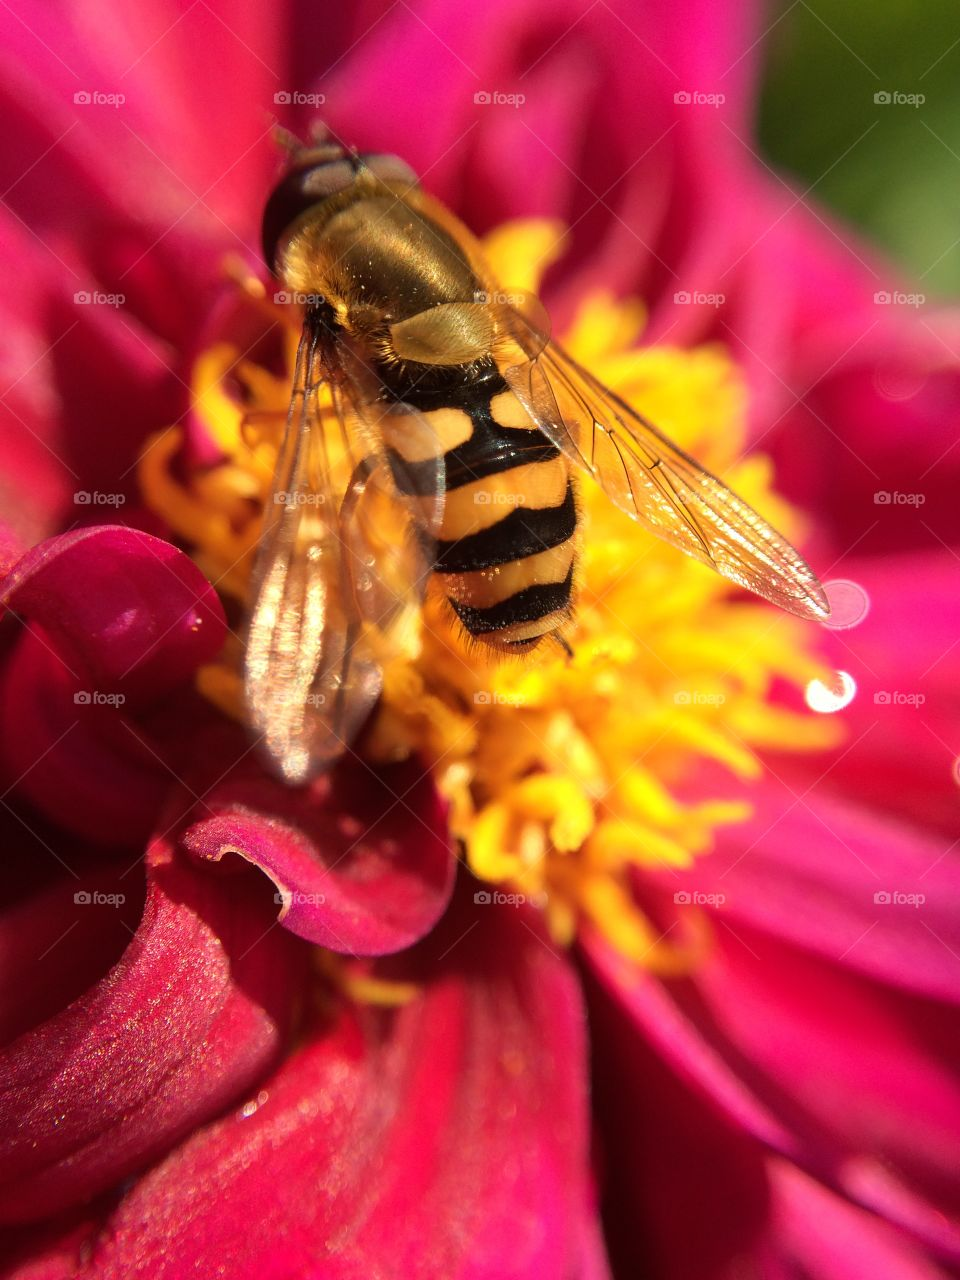 Last Glimpse of Summer. I received this Dahlia as a gift and took a photo as a wasp/hornet decided to gather some late pollen ...